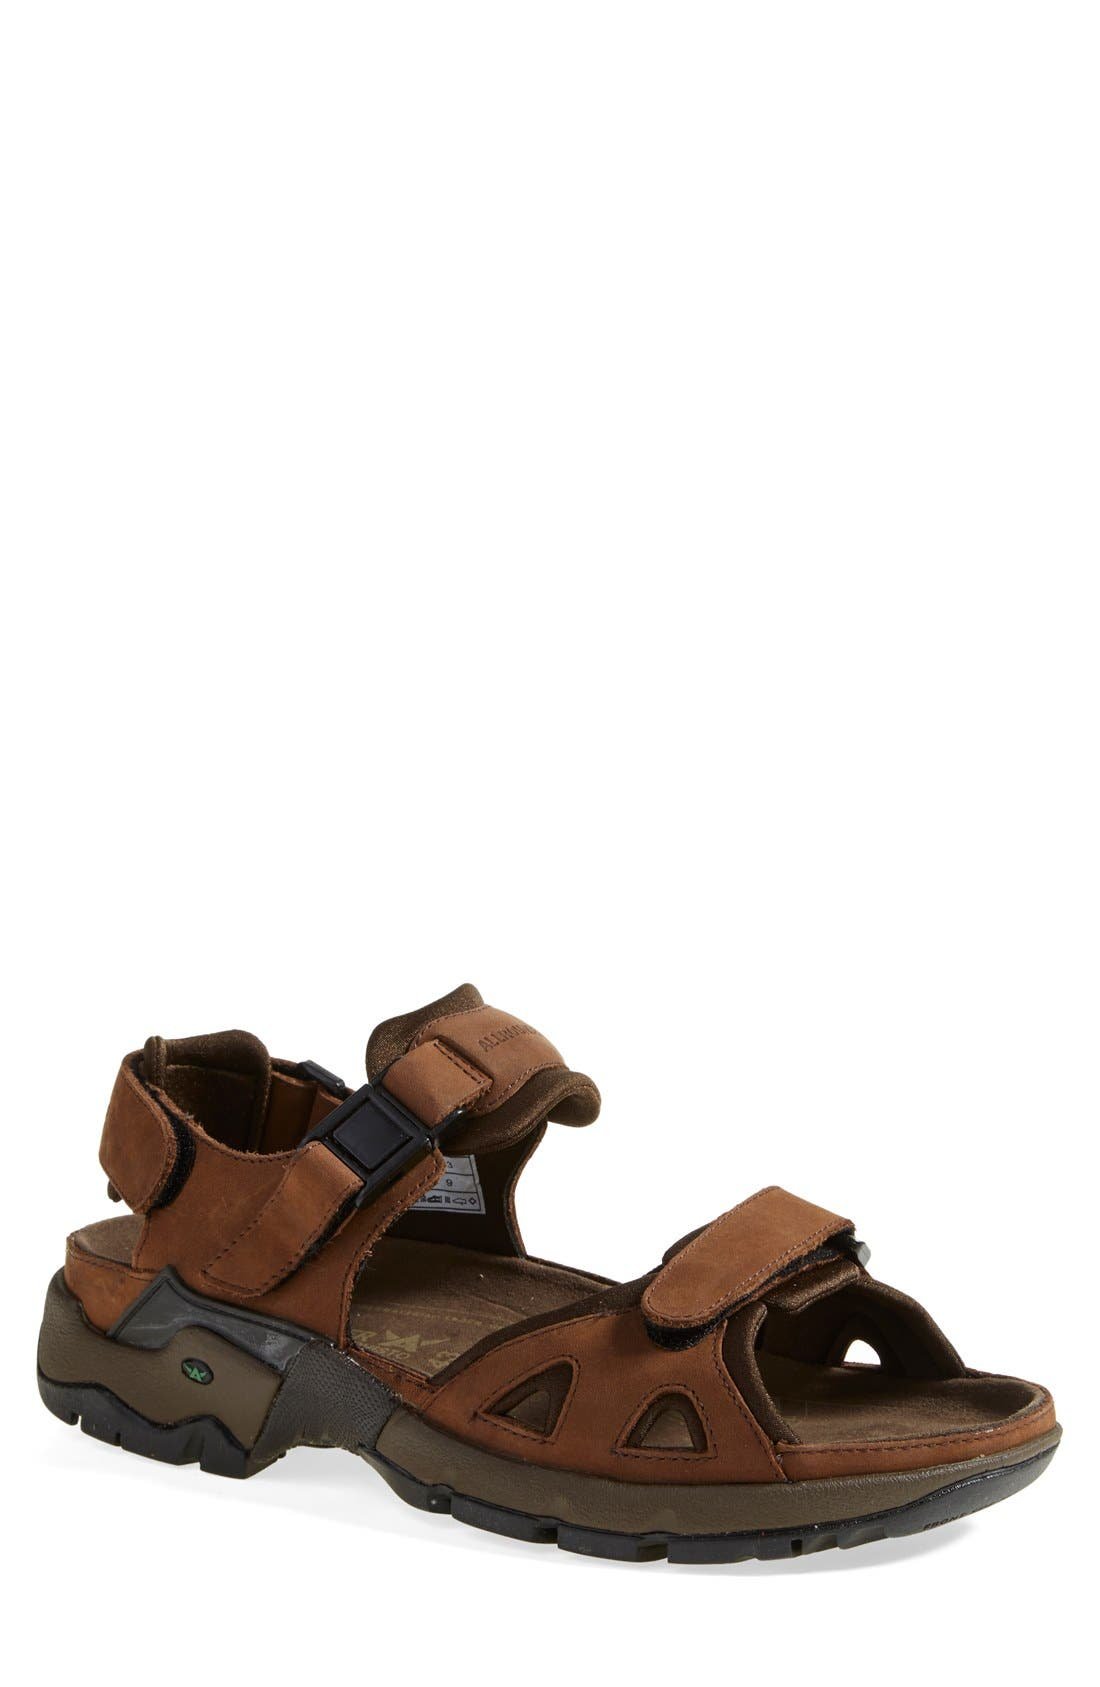 Allrounder by Mephisto 'Alligator' Sandal, Main, color, BROWN